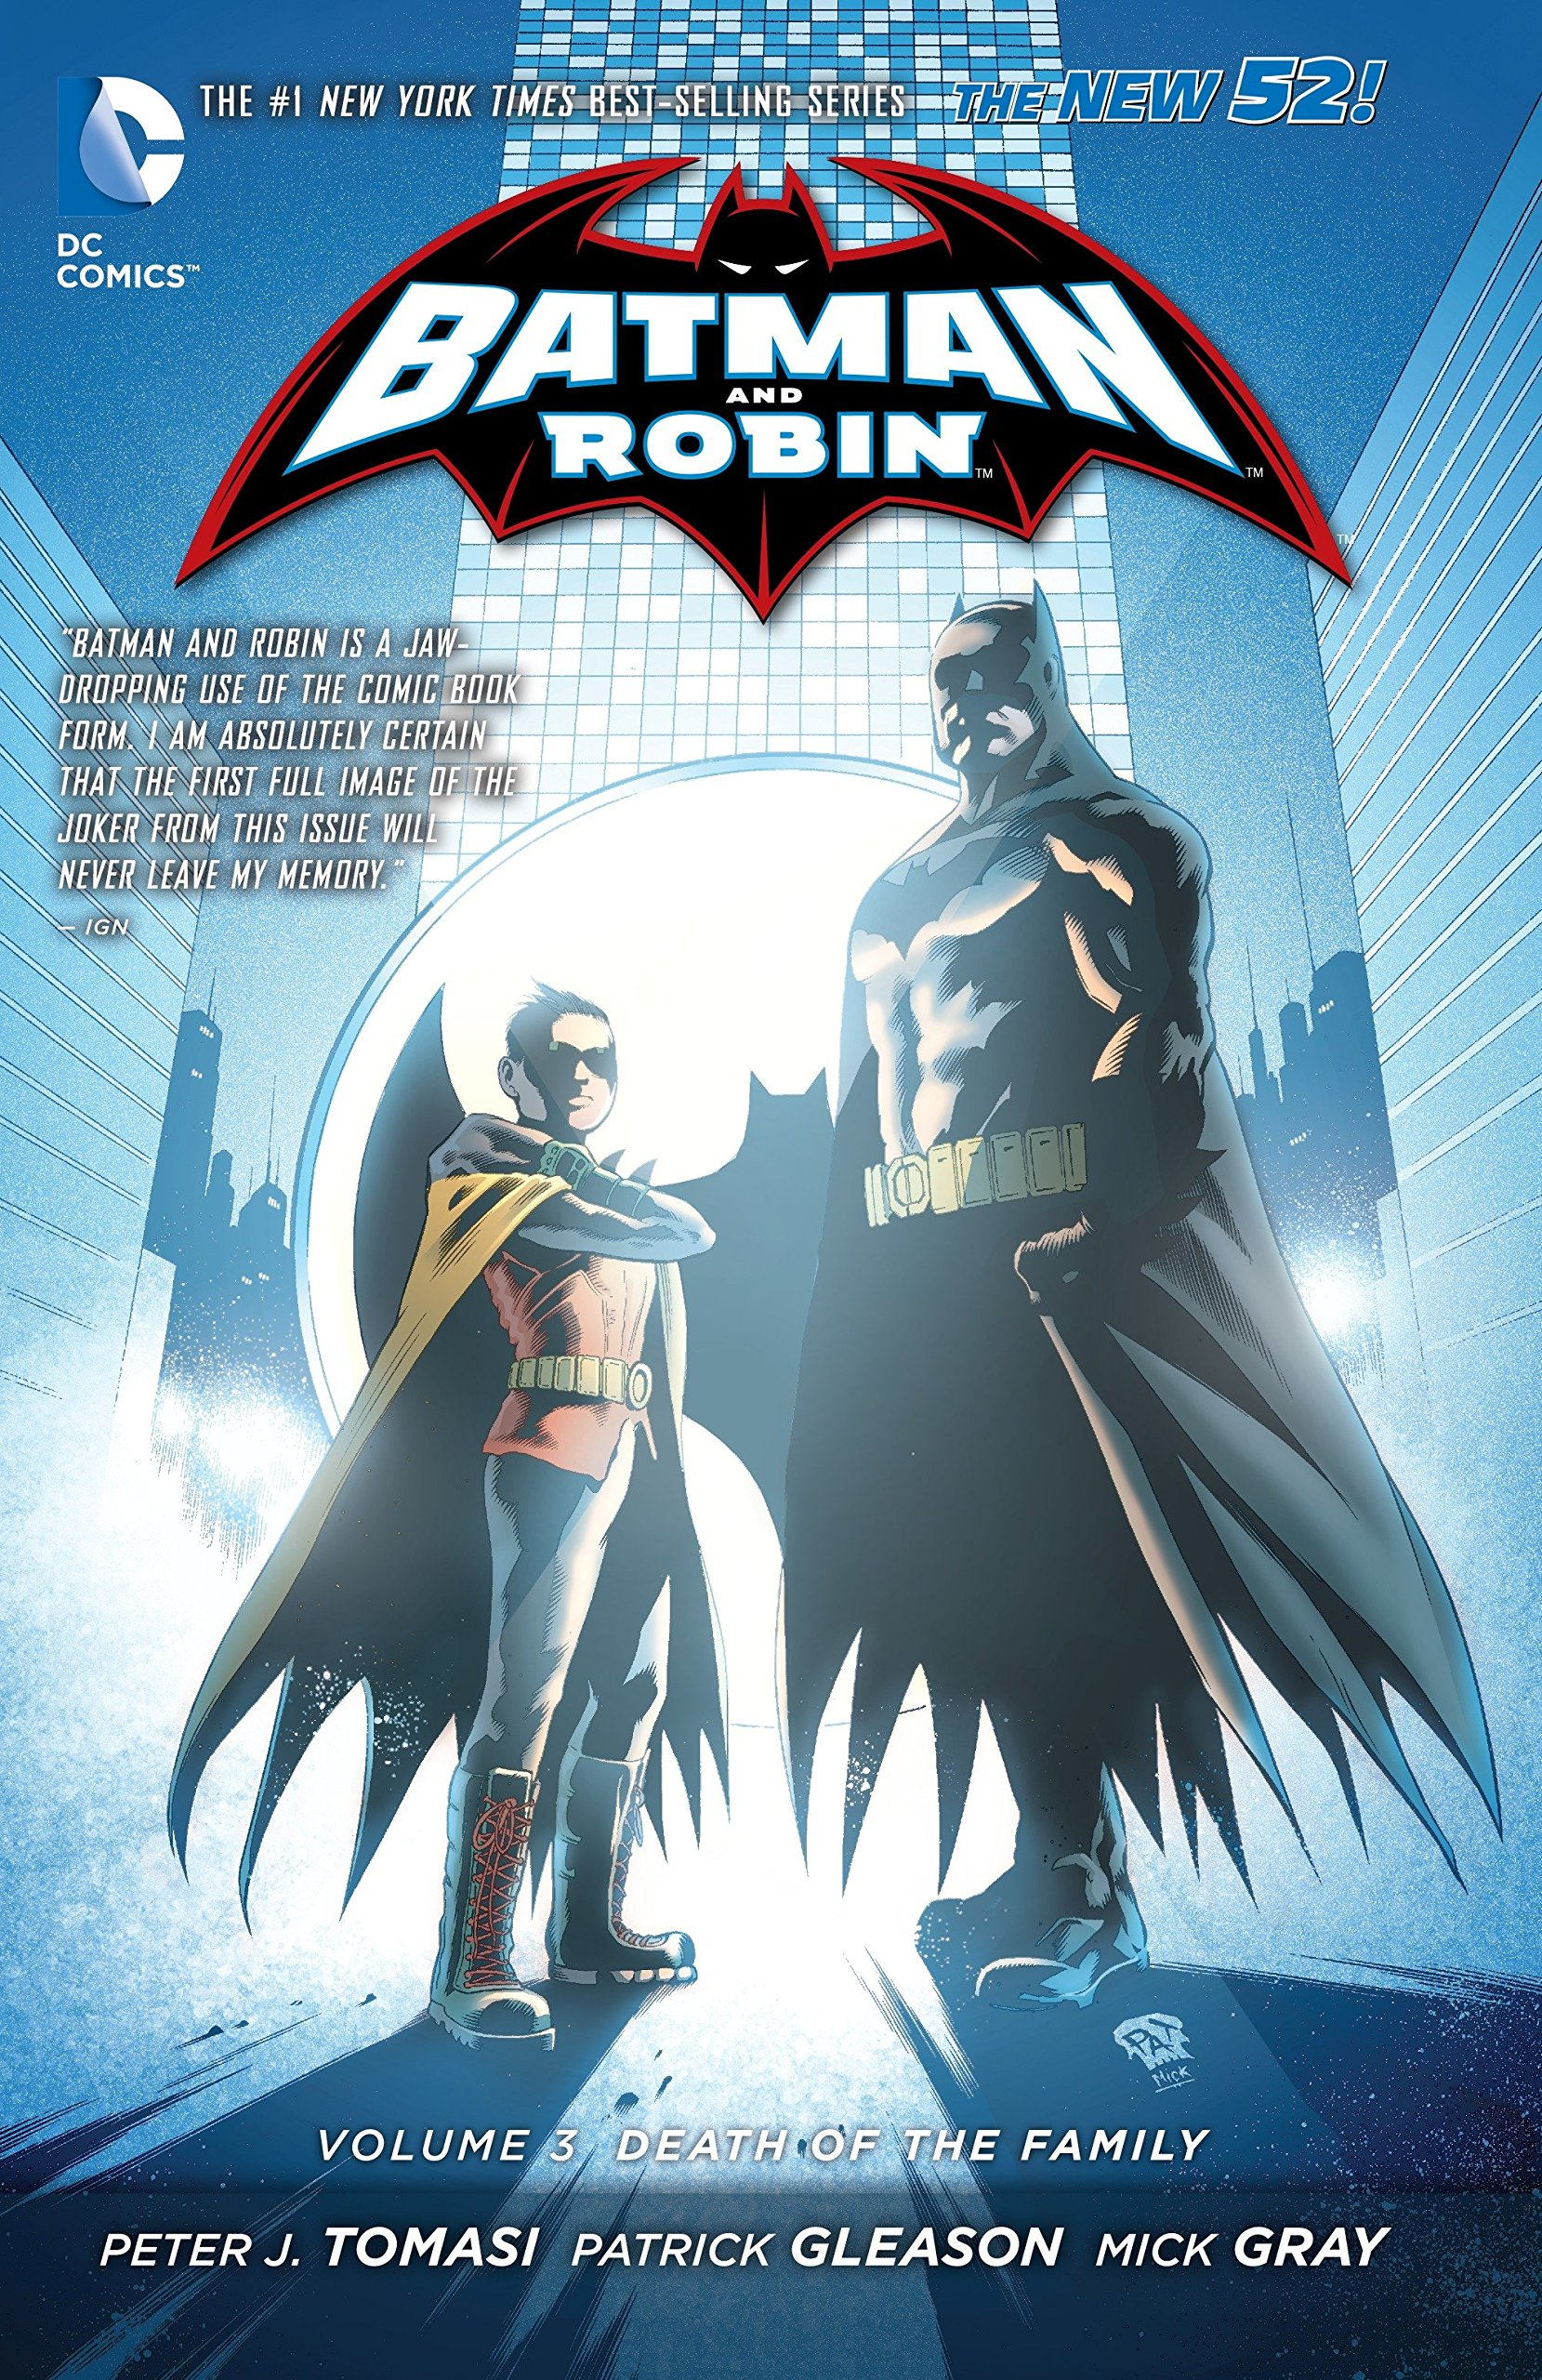 Batman and Robin Vol. 3: Death of the Family (The New 52) (Batman: The New 52)